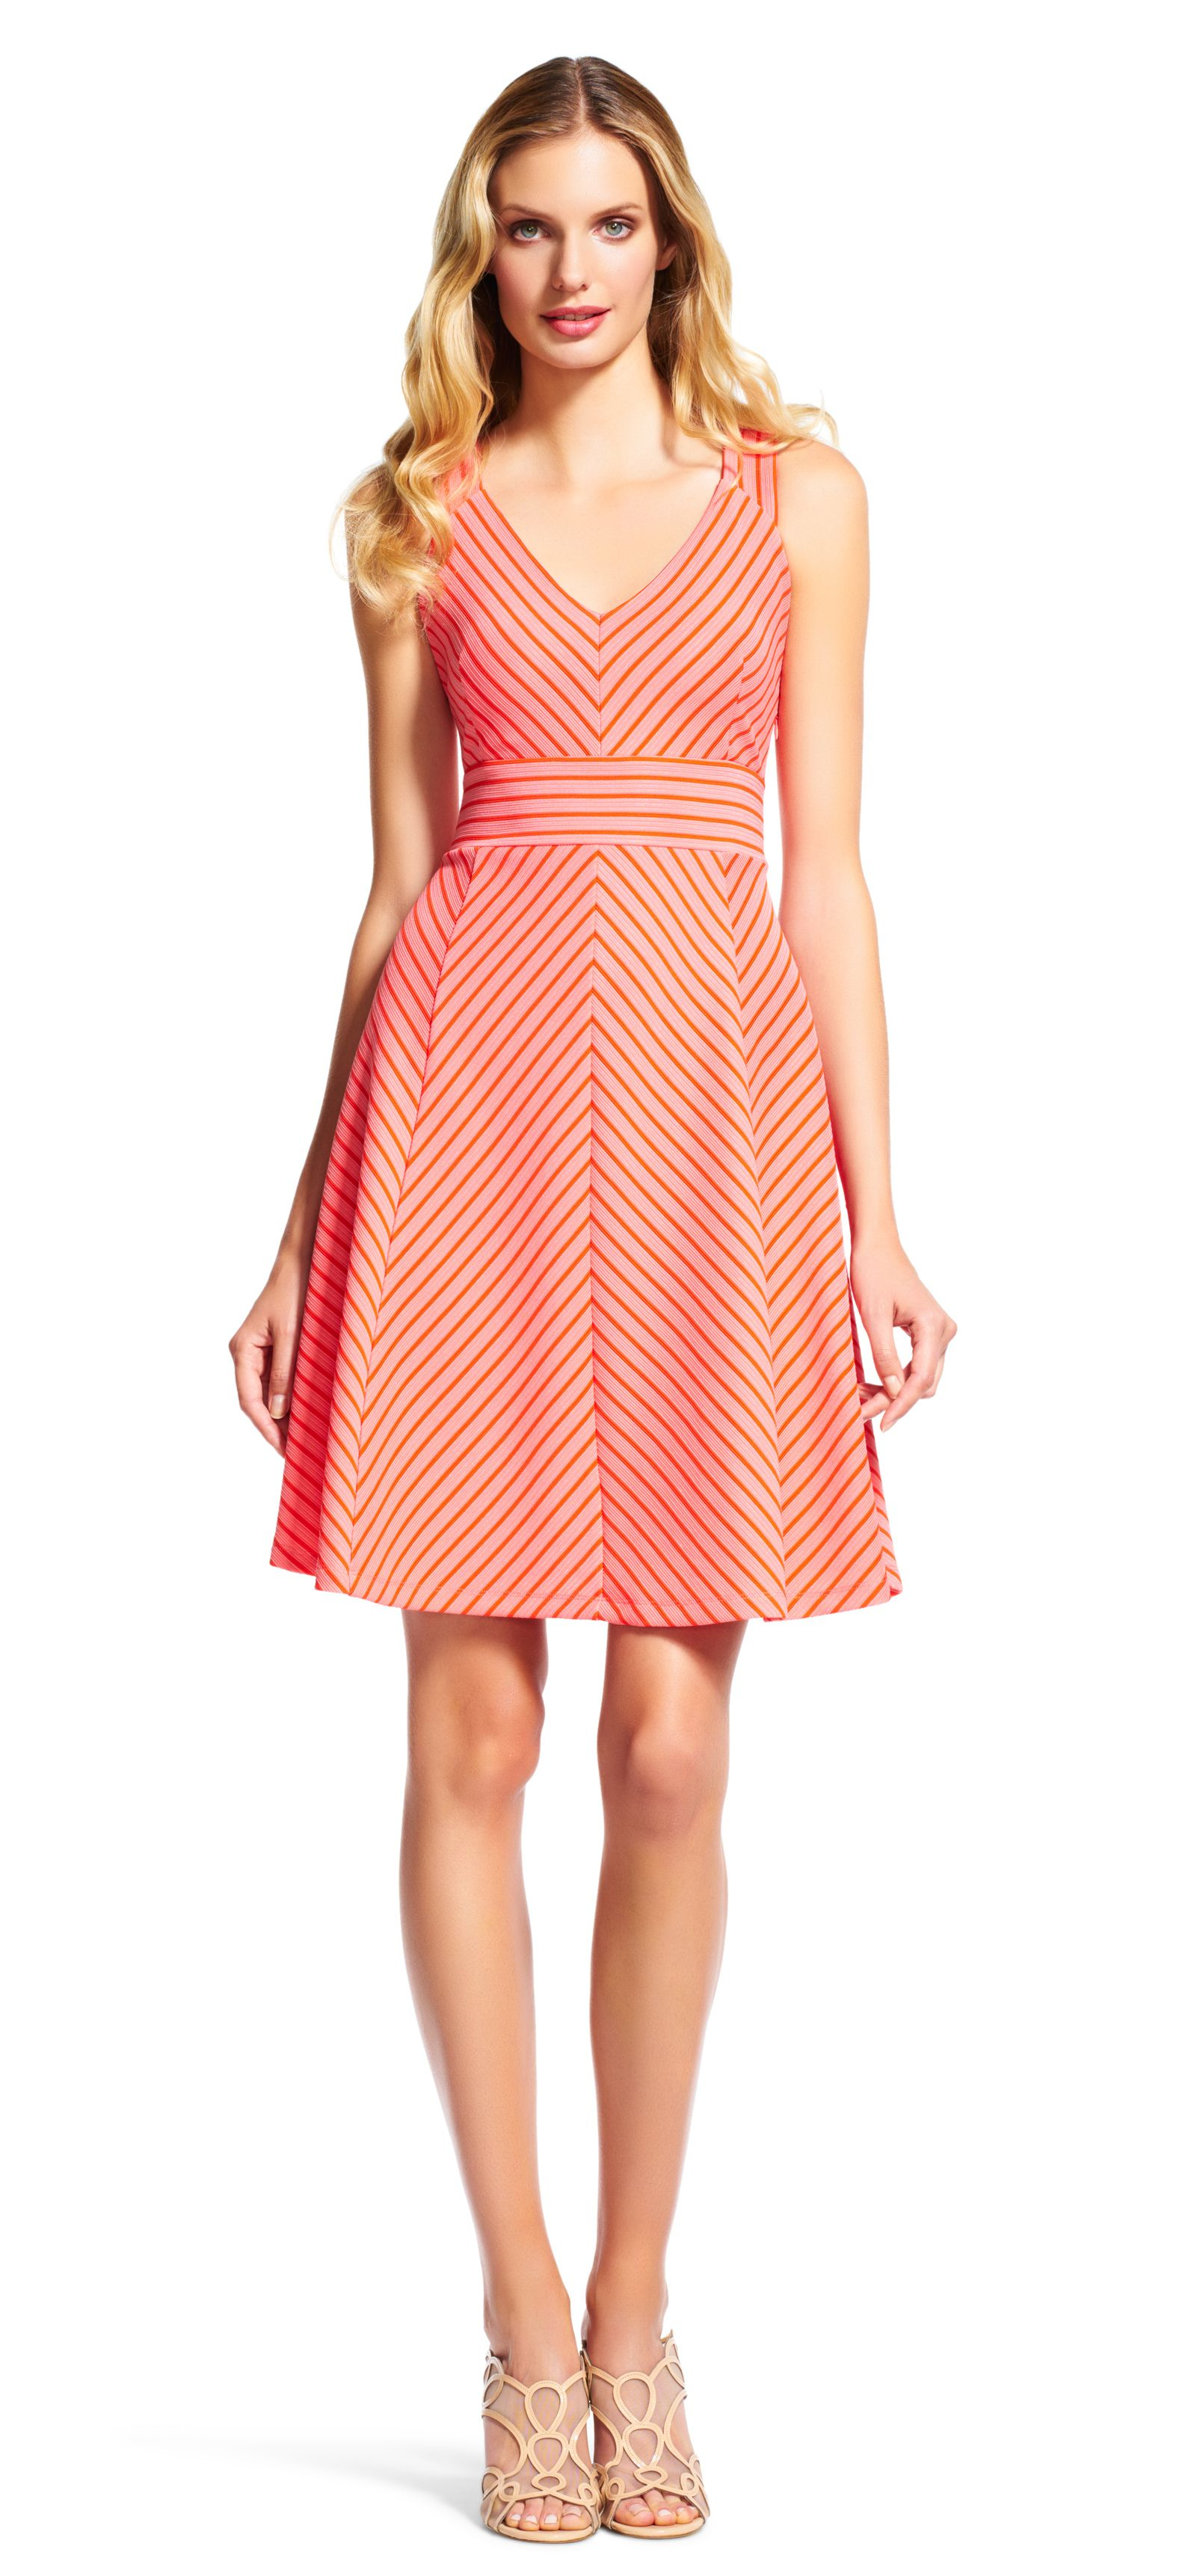 Adrianna Papell sleeveless striped fit and flare dress   Bright and feminine, this pretty day dress is a must for summer. A contrast stripe print covers this fit and flare dress featuring a v-neckline and criss-cross back. The a-line skirt adds extra flounce to this short dress.